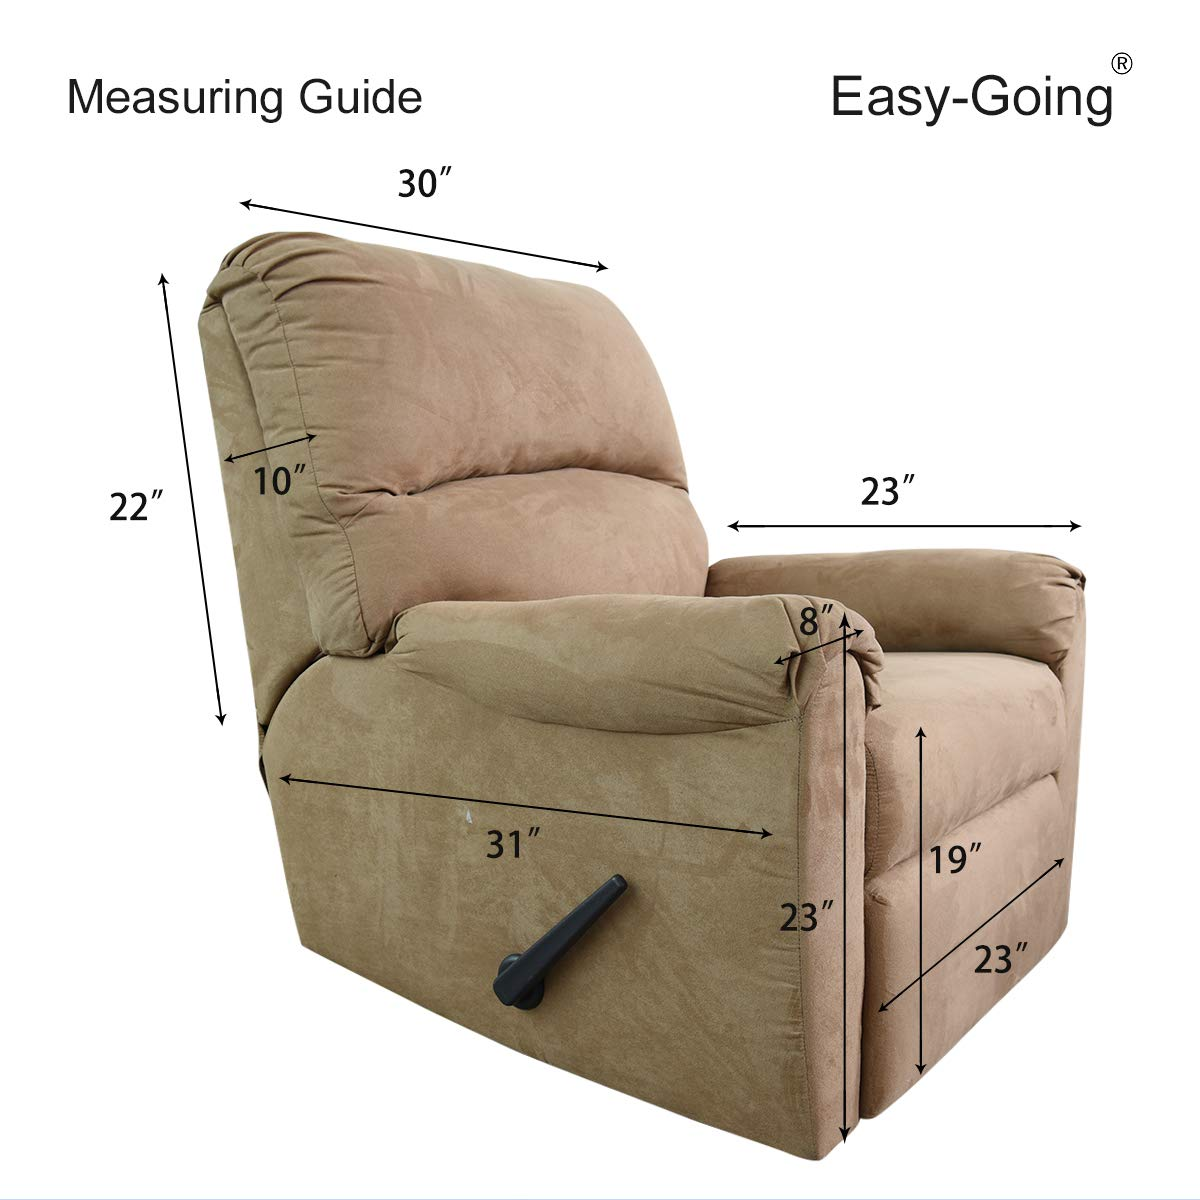 Easy Going Stretch Recliner Slipcovers Sofa Covers 4pieces